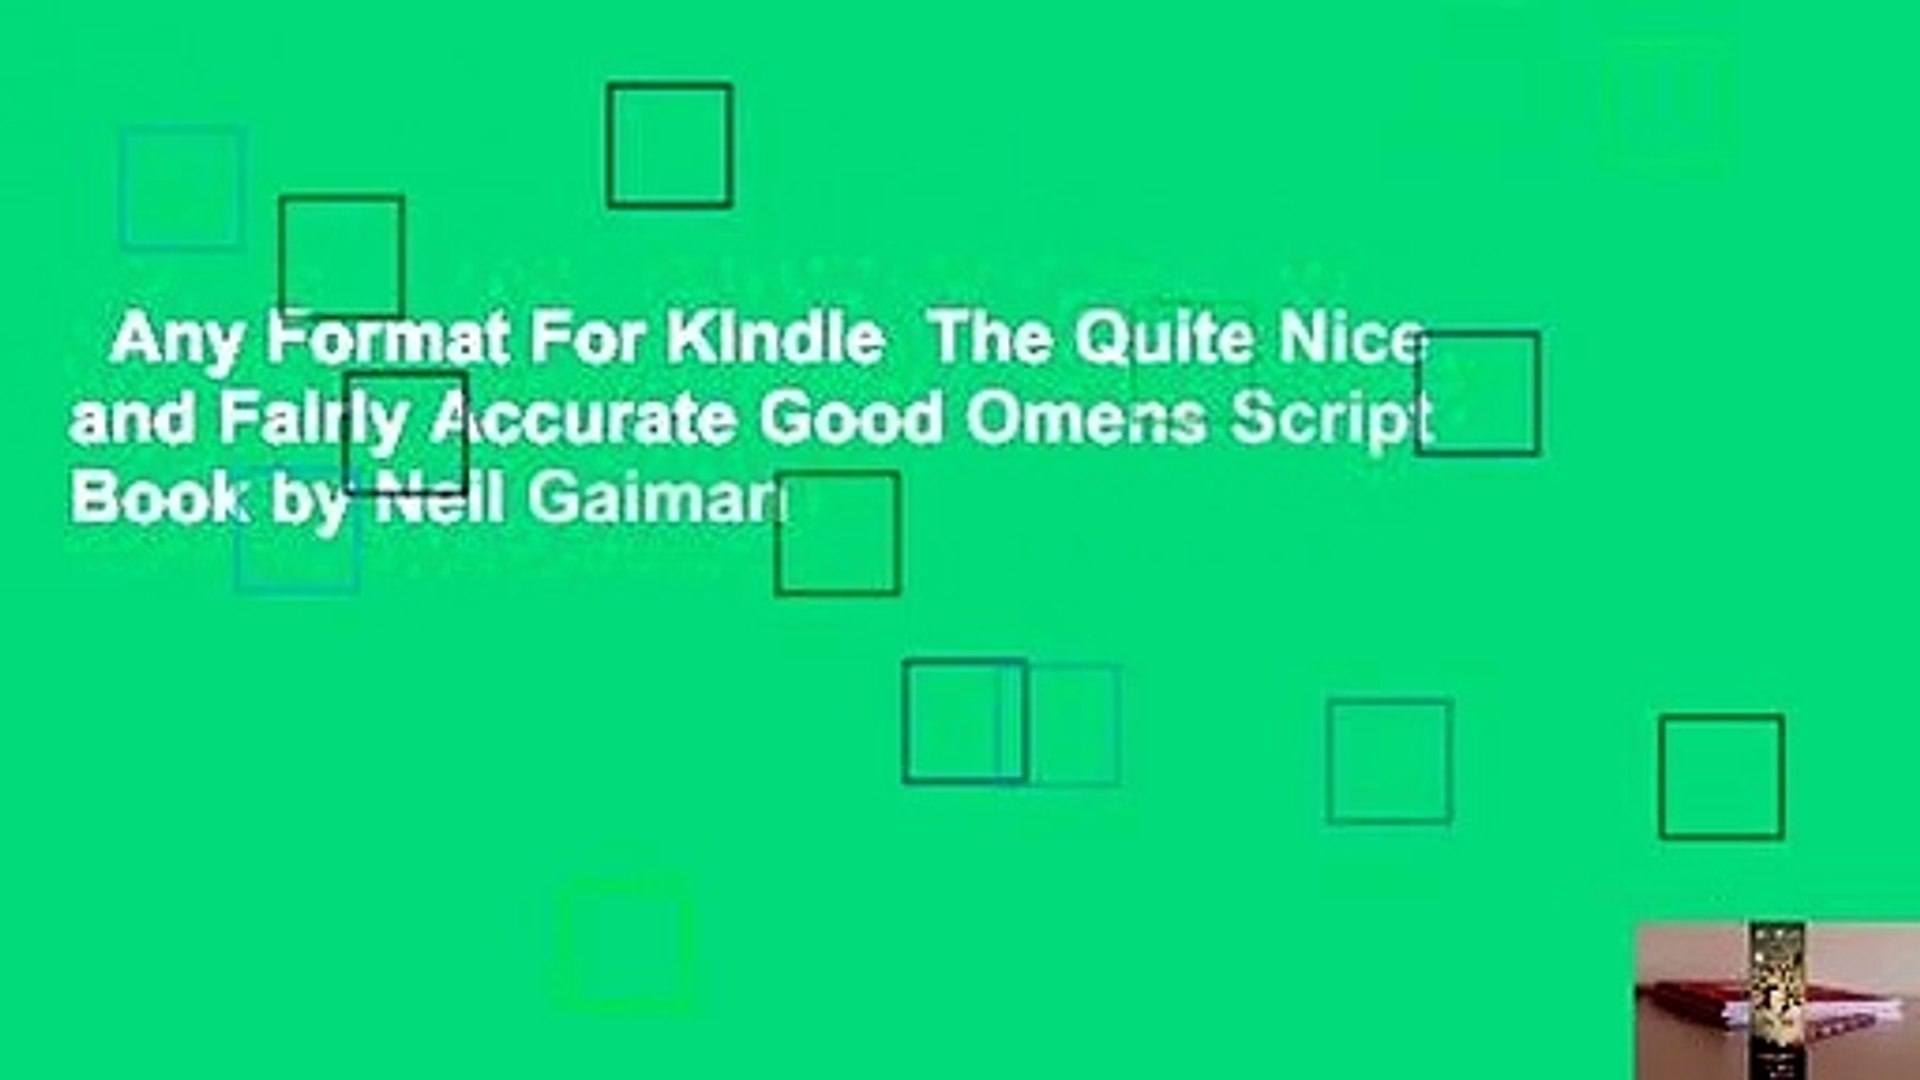 Any Format For Kindle The Quite Nice and Fairly Accurate Good Omens Script  Book by Neil Gaiman